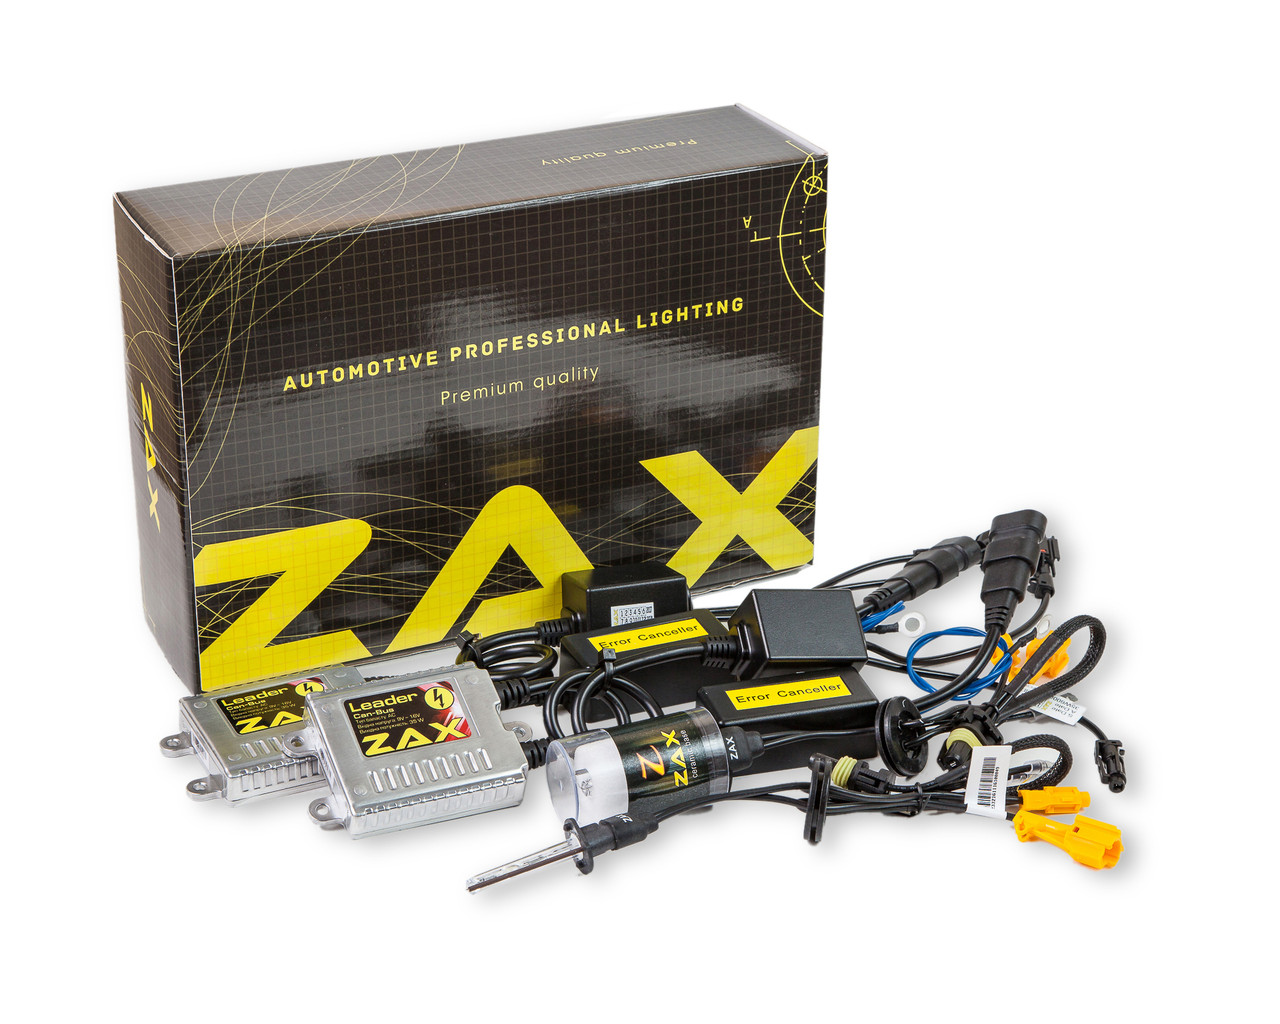 Комплект ксенона ZAX Leader Can-Bus 35W 9-16V H1 Ceramic 3000K